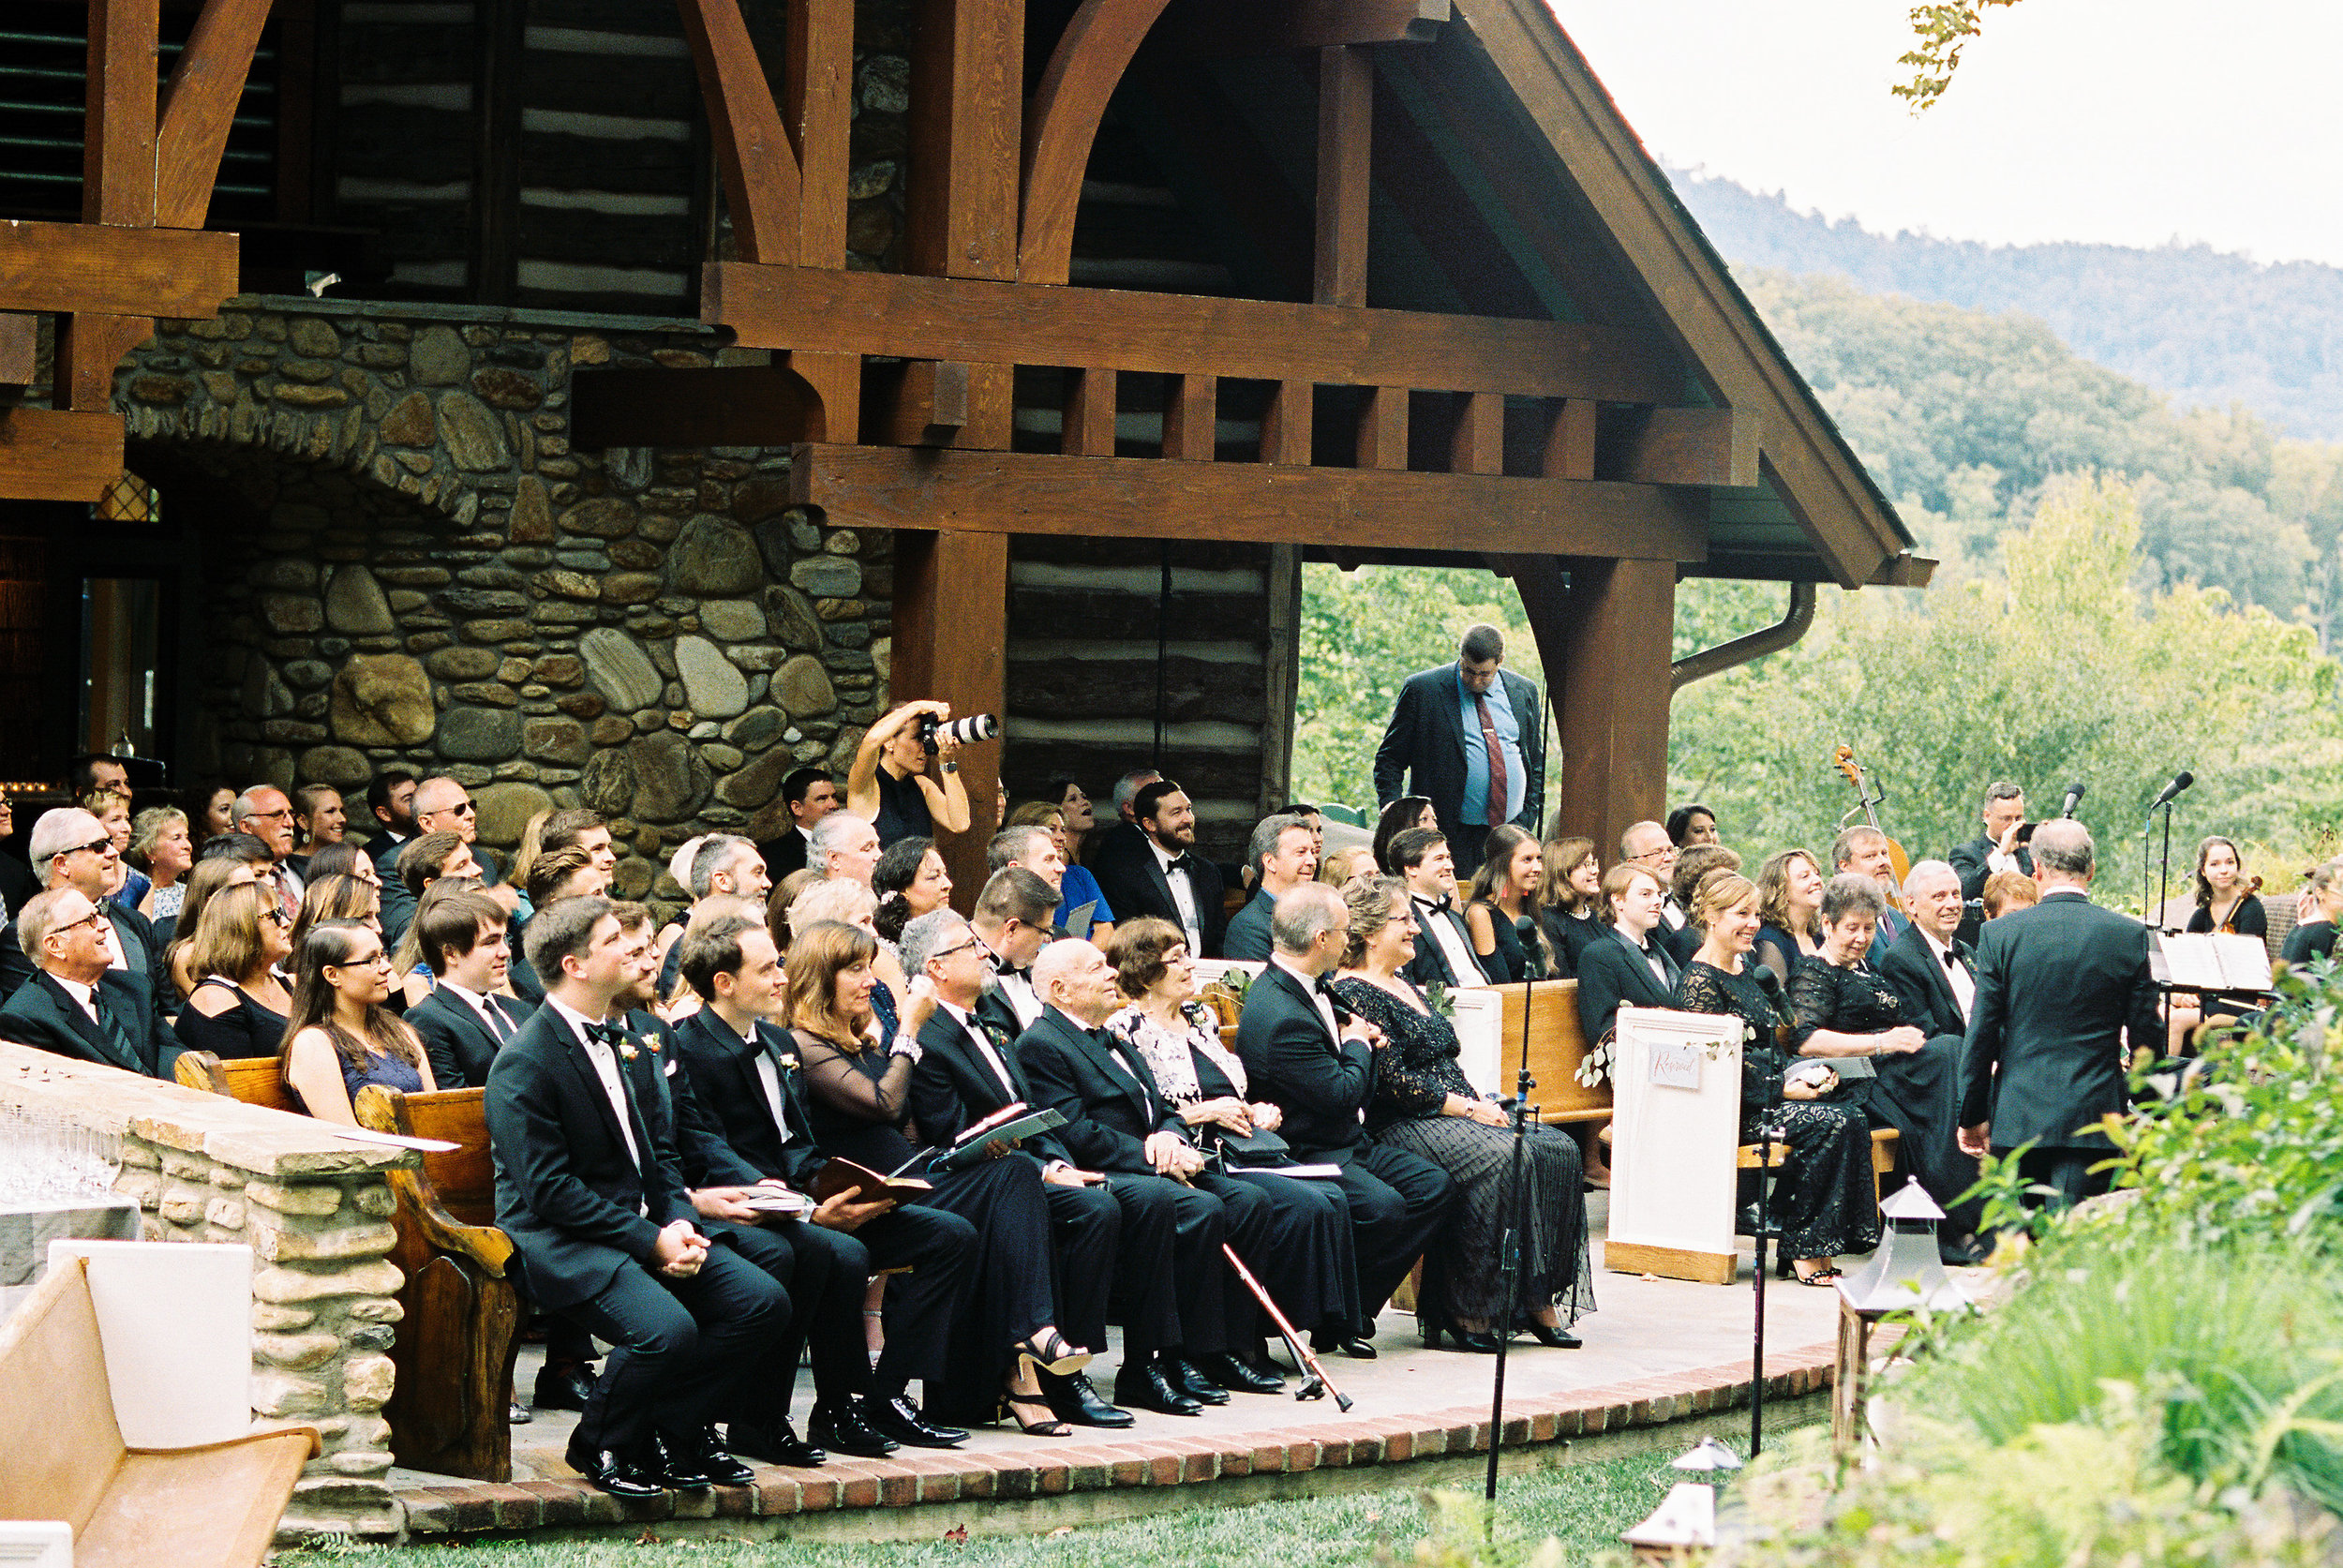 bdc9a-ncmountainhomeweddingceremonyncmountainhomeweddingceremony.jpg